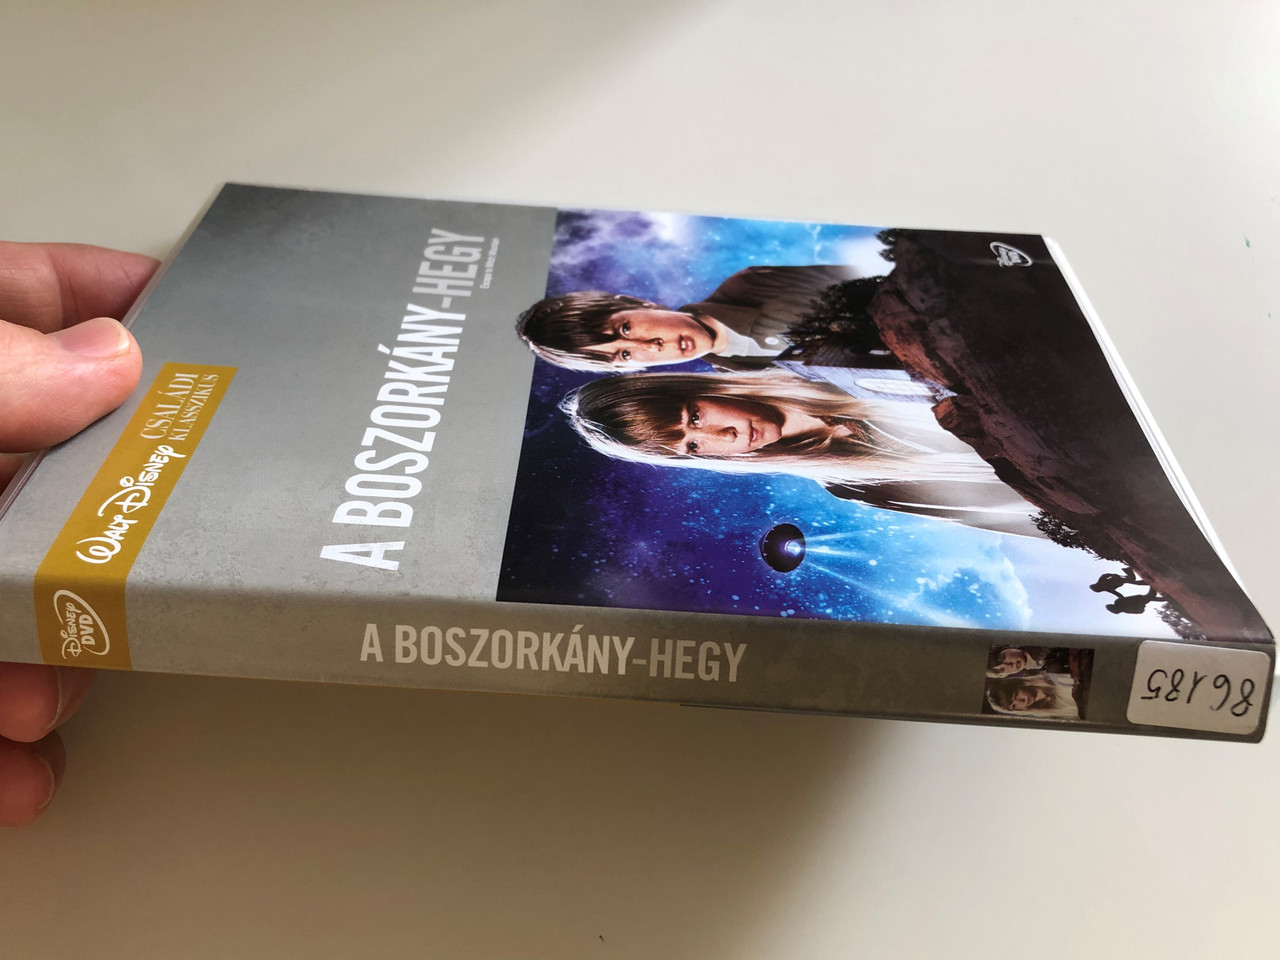 A Boszorkány-hegy DVD 1978 Escape to Witch Mountain / Directed by John  Hough / Starring: Eddie Albert, Ray Milland, Donald Pleasence, Kim  Richards,